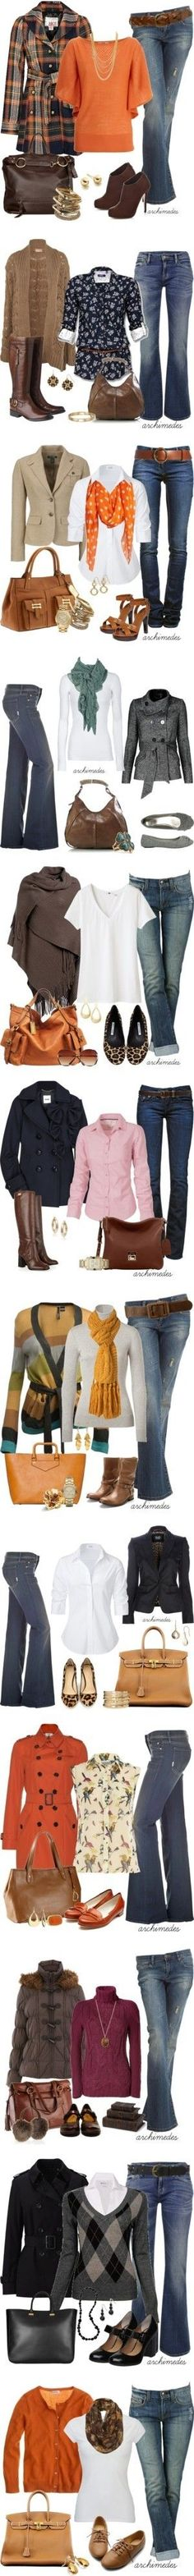 good ideas for fall | Find More at =>…